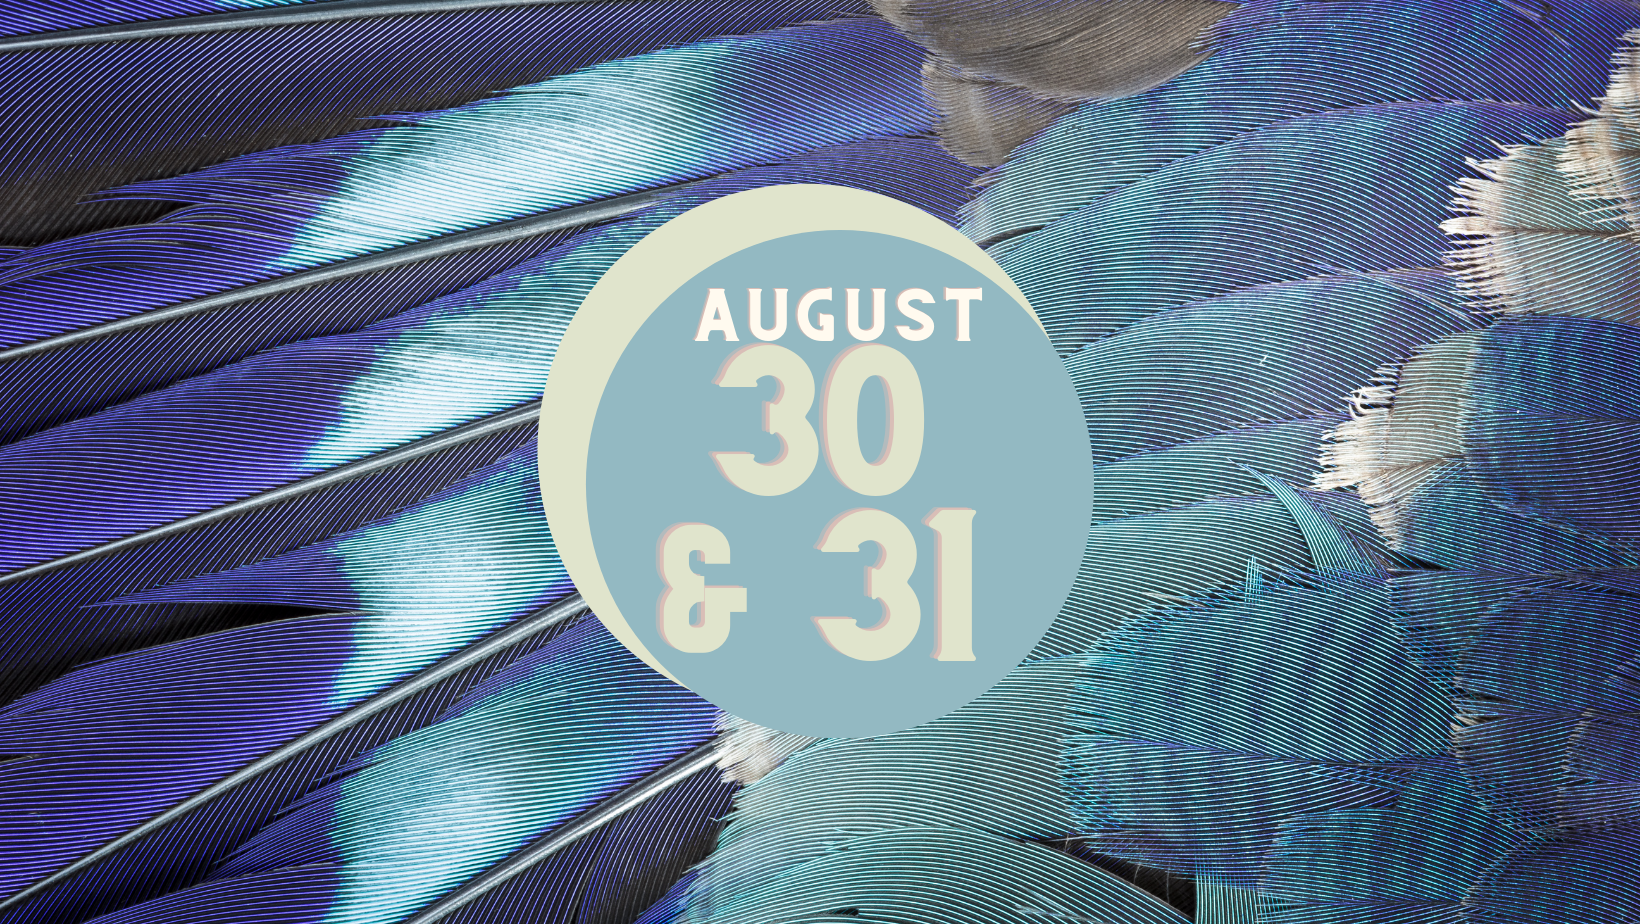 blue and grey feathers with august 30 and 31st written in a circle